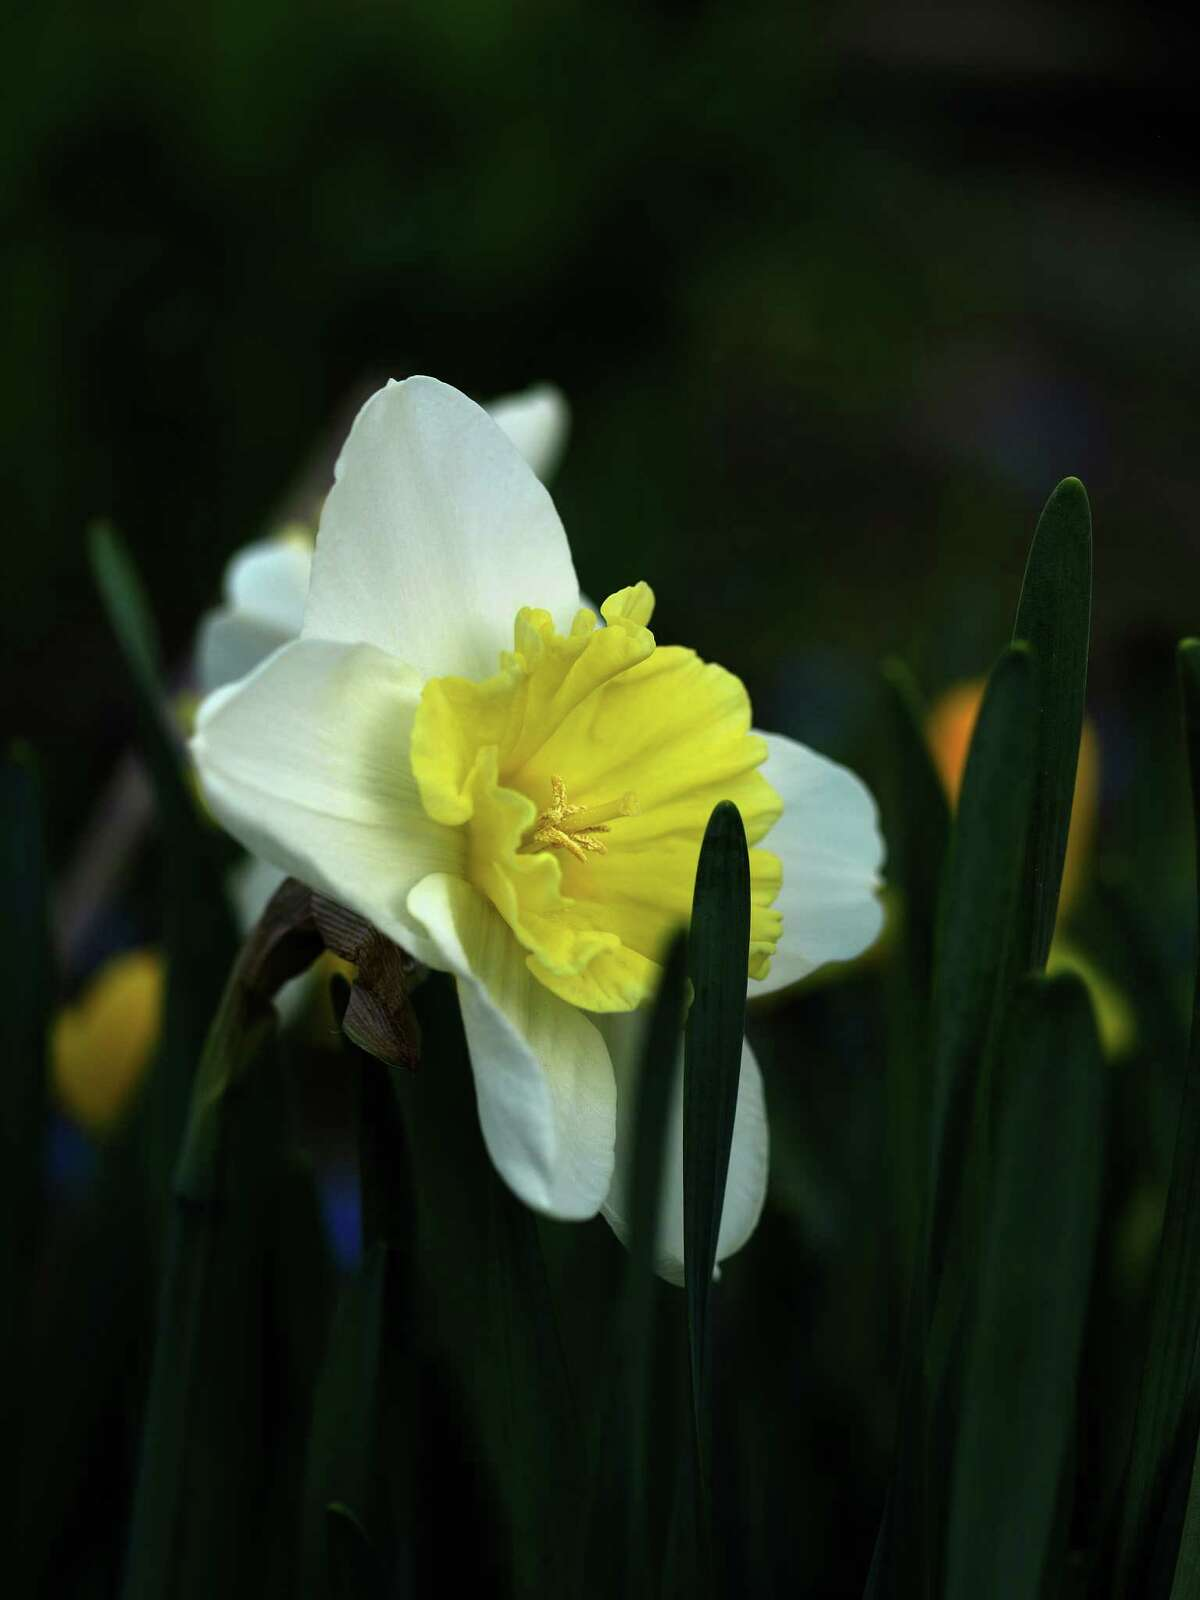 Flowering Narcissus, or what is commonly known as daffodils. Peter Bowden considers them the